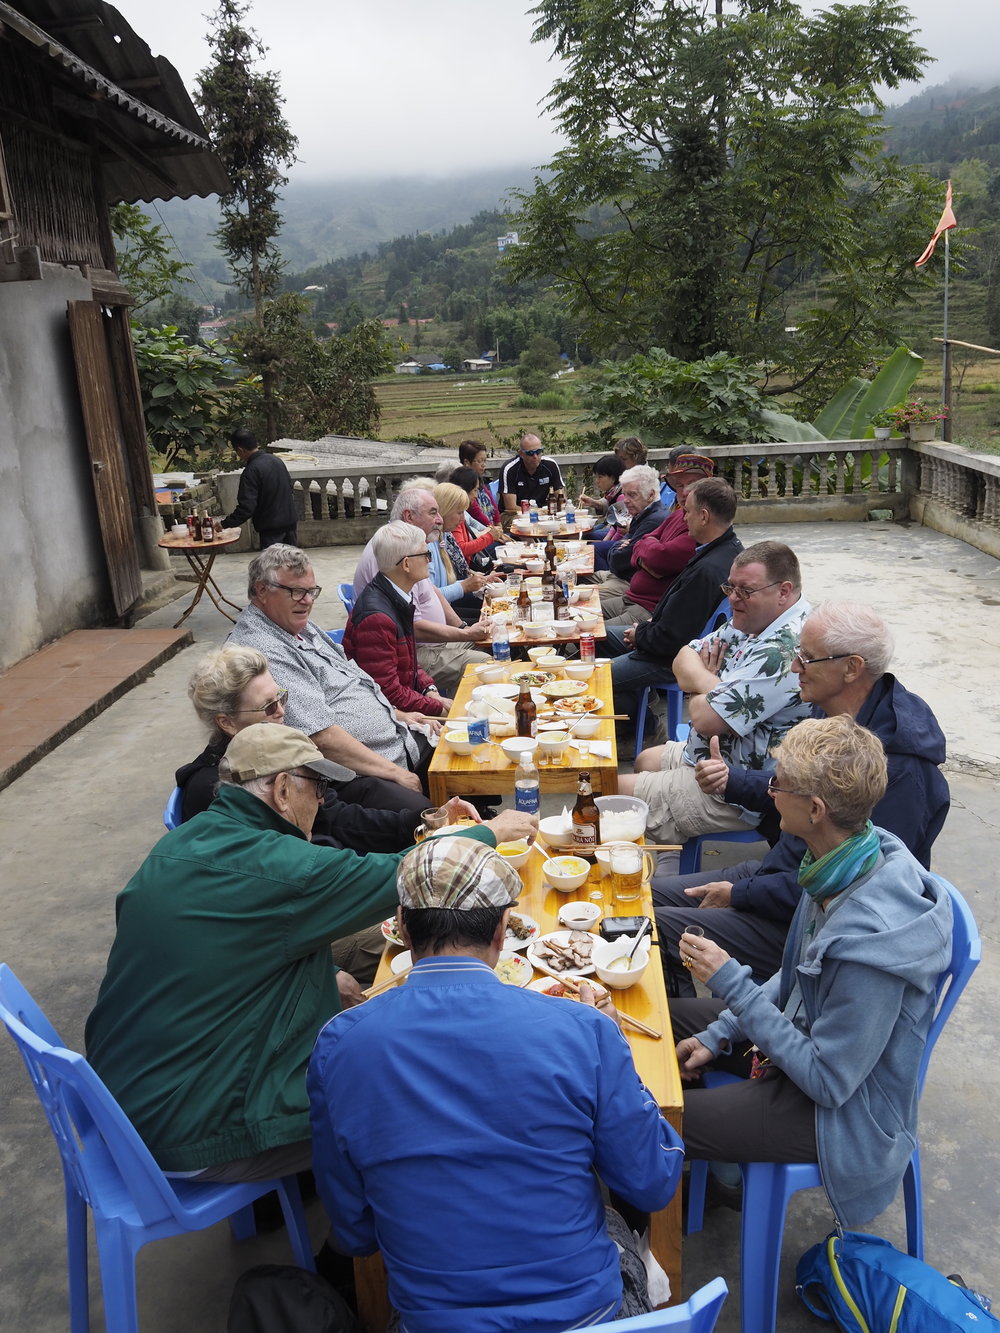 Northern Vietnam Tour 2017 - Lunch at a village house. Image by courtesy of Colin Day